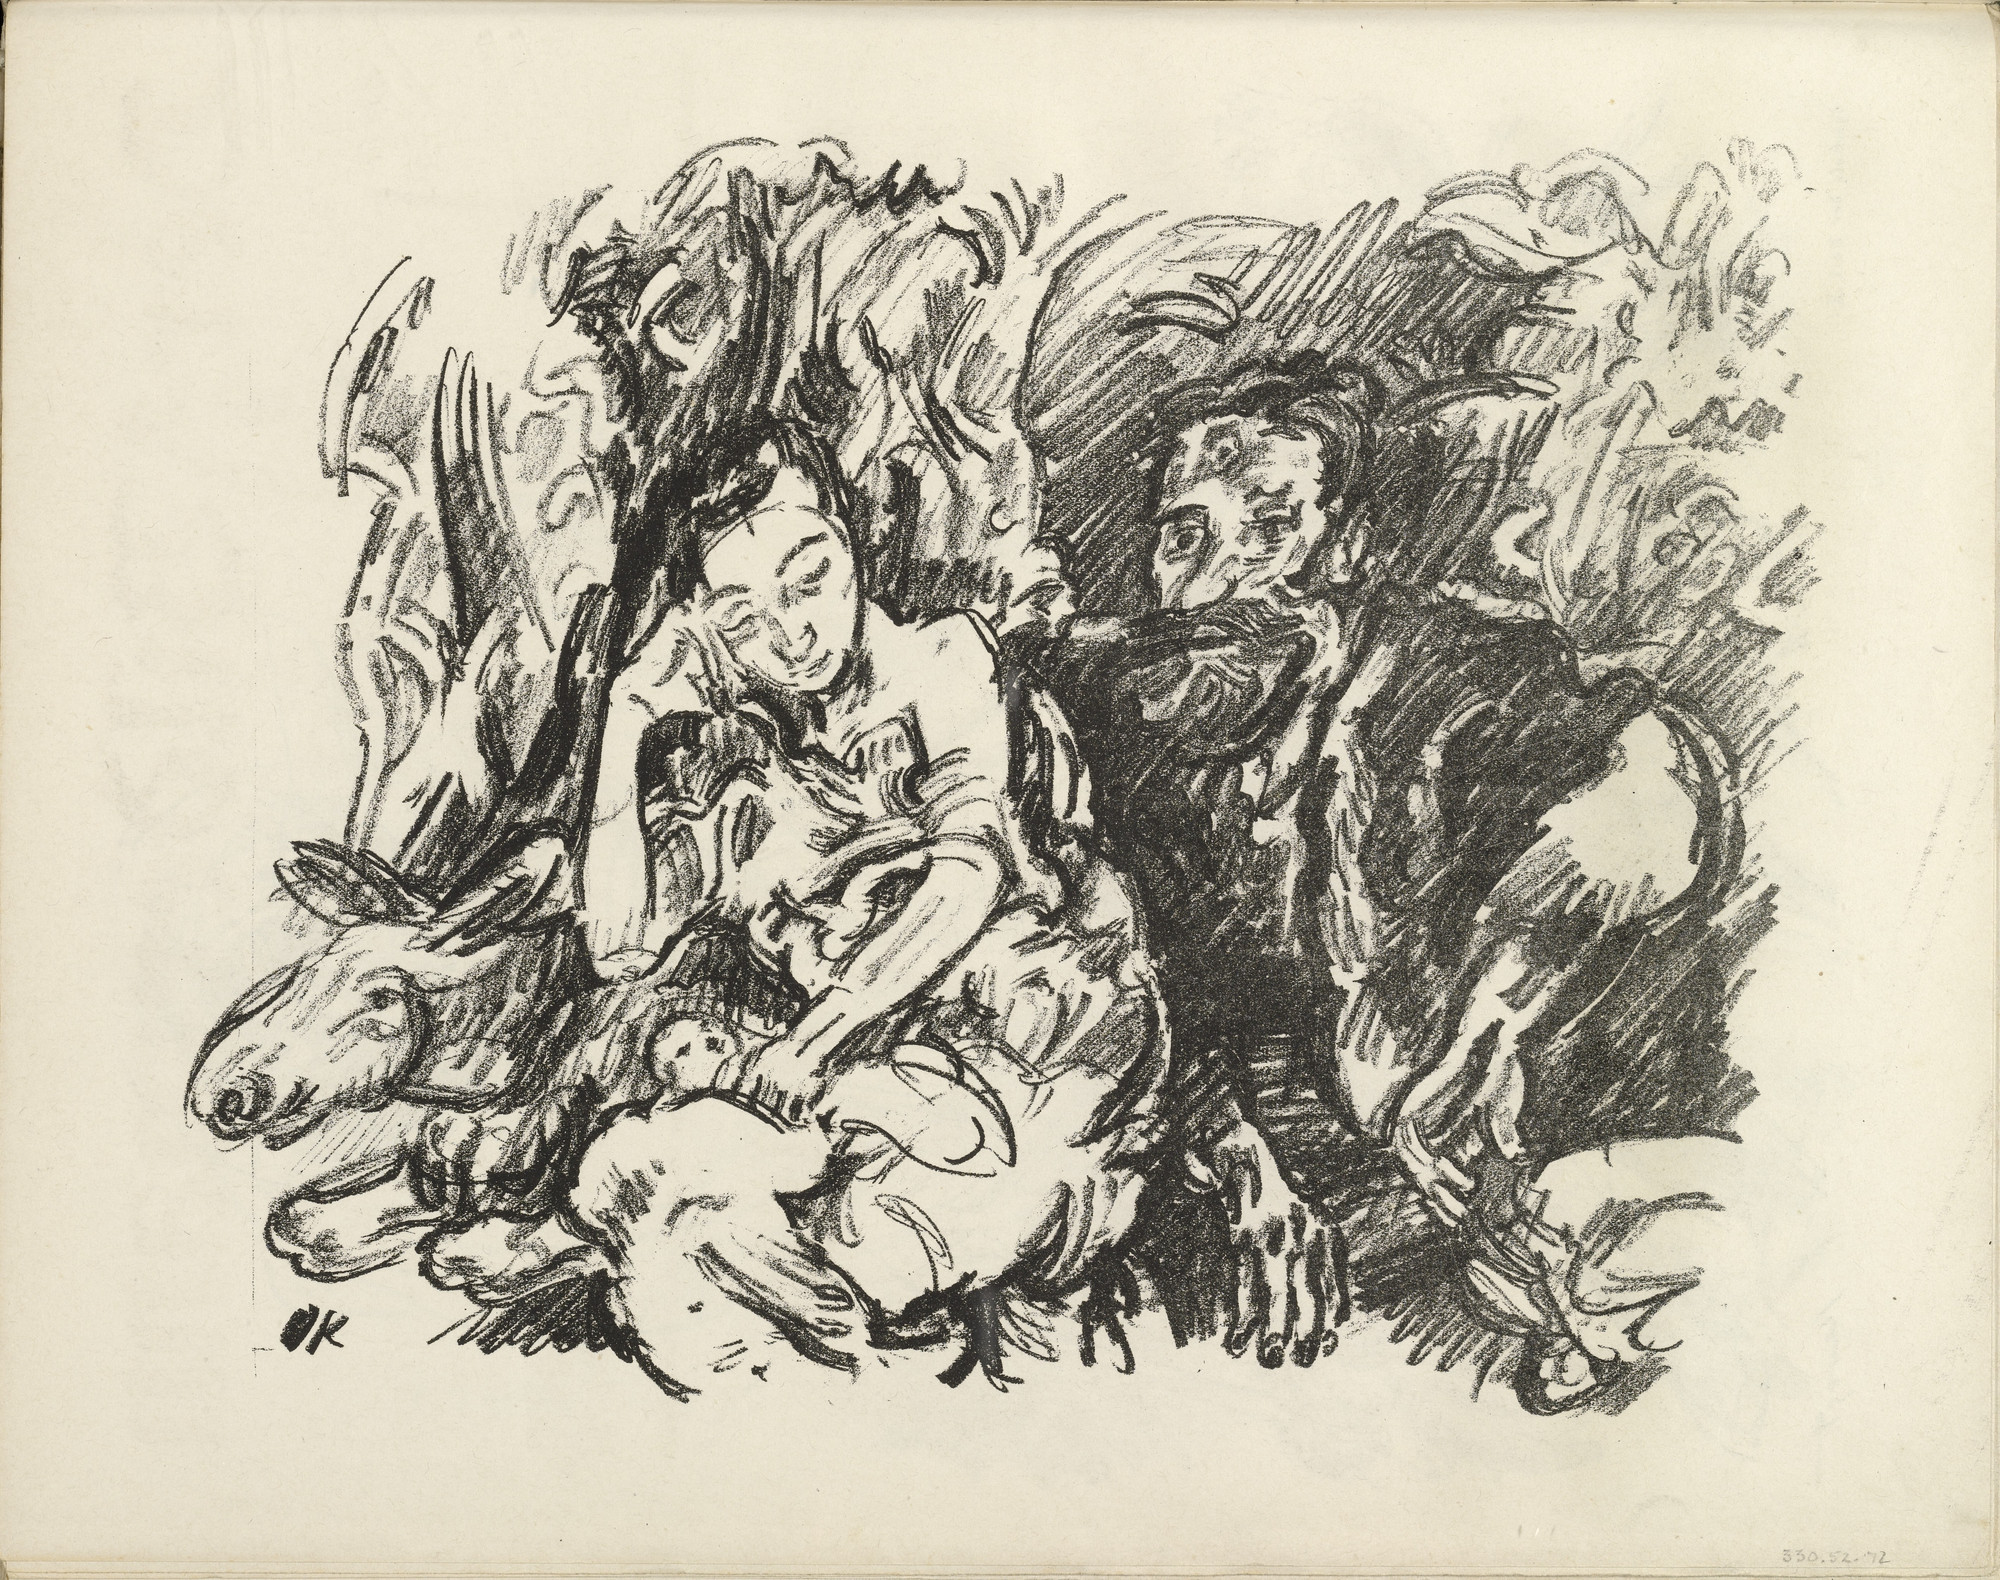 Oskar Kokoschka. The Holy Family. Rest on the Flight to Egypt (Die Heilige Familie. Rast auf der Flucht nach Ägypten) (plate, folio 37 verso) from the periodical Der Bildermann, vol. 1, no. 18 (Dec 1916). 1916